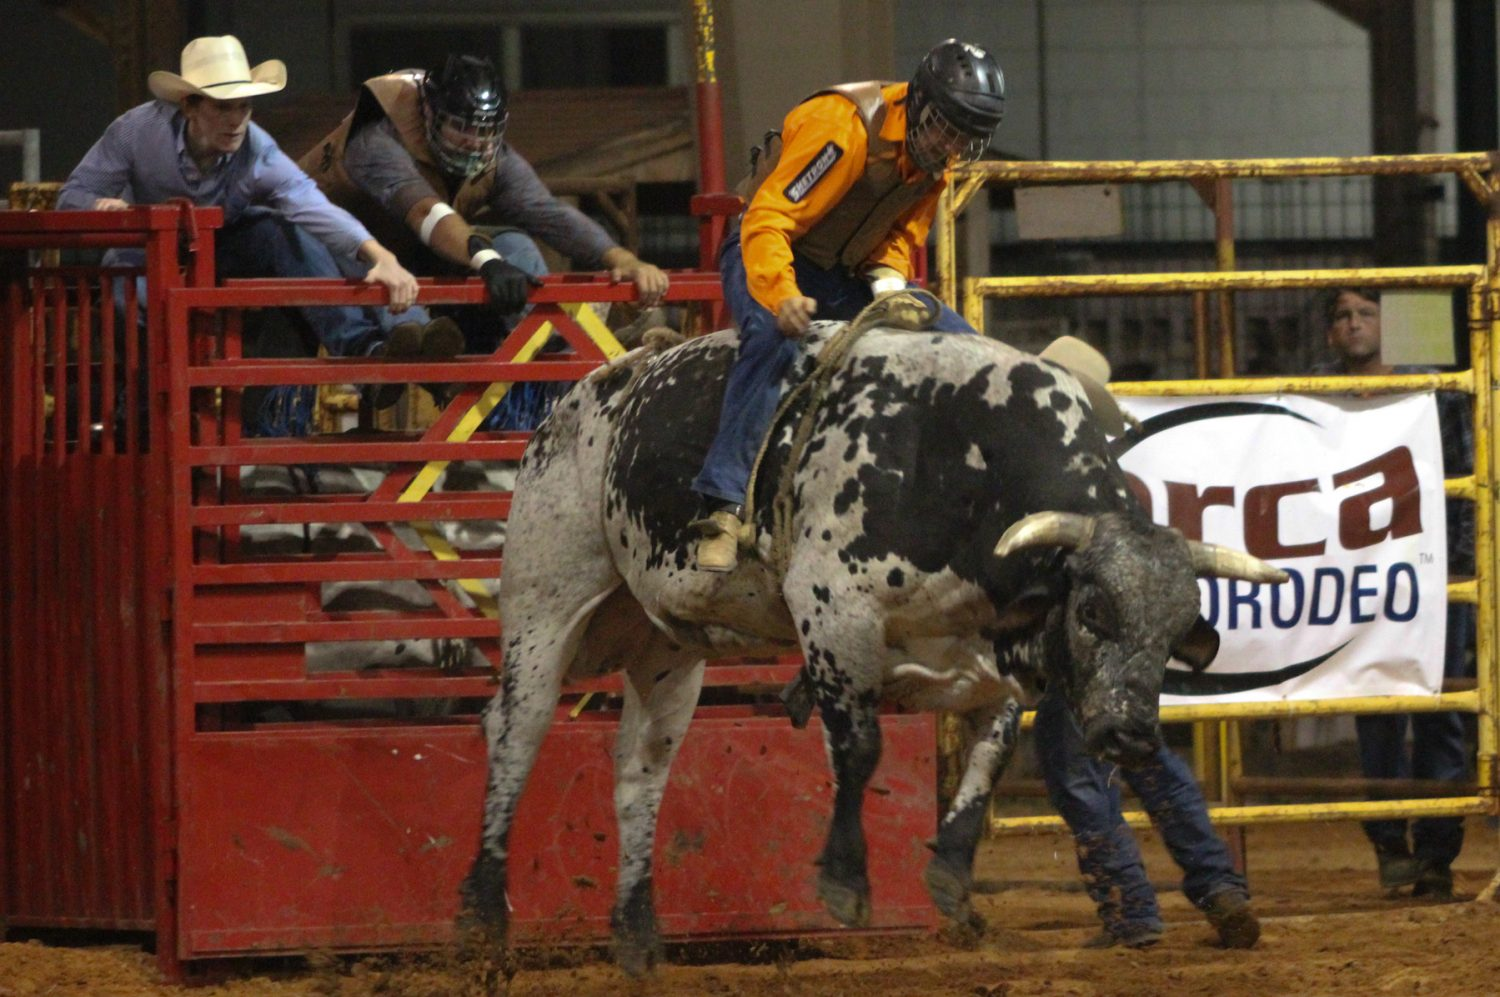 Clovis Crane of Lebanon, PA competes in the bull riding competition at the Ocala Pro Rodeo on Friday night, March 21, 2014.